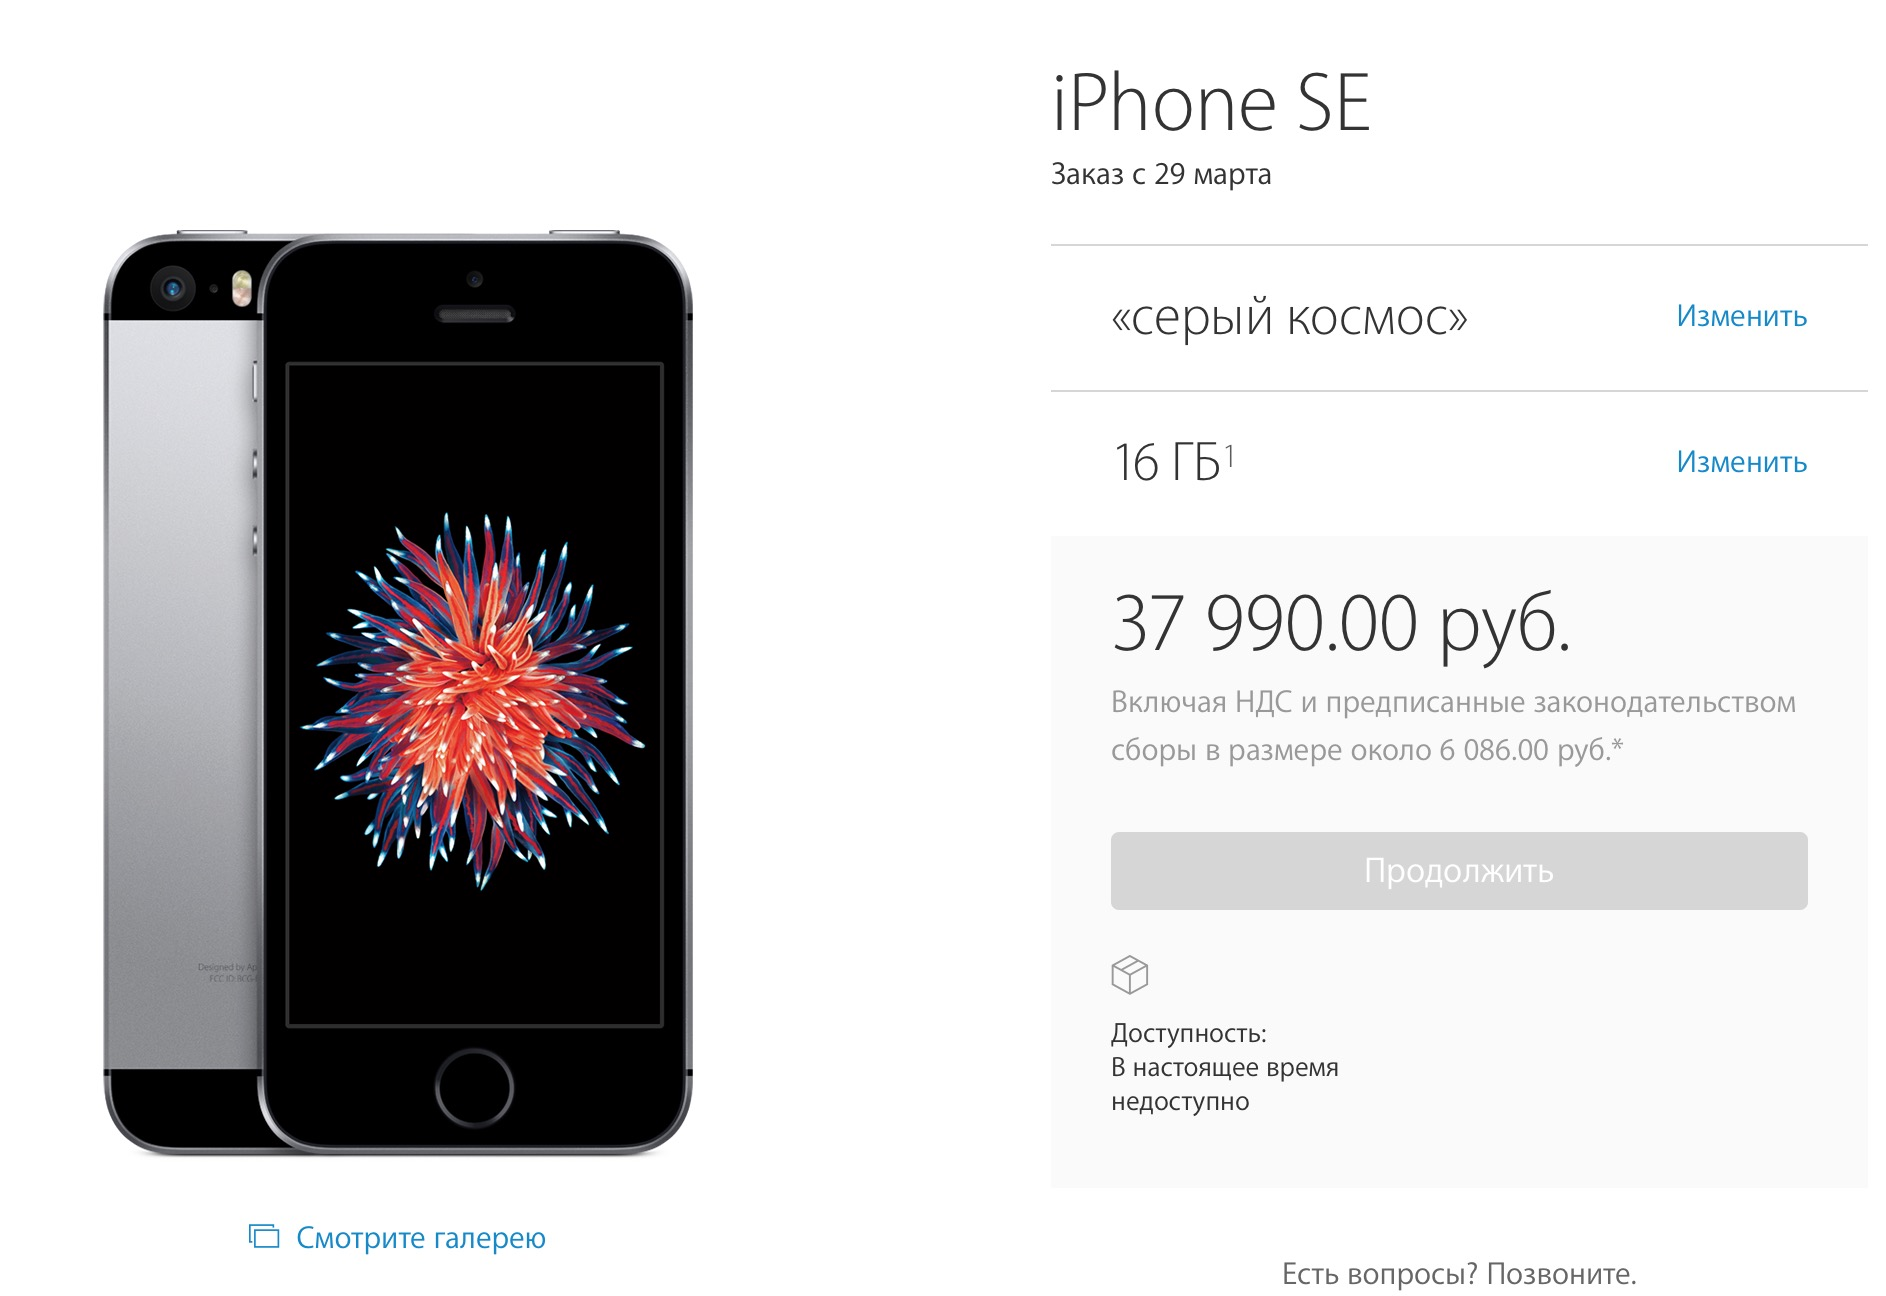 Why iPhone SE costs 38 thousand roubles?